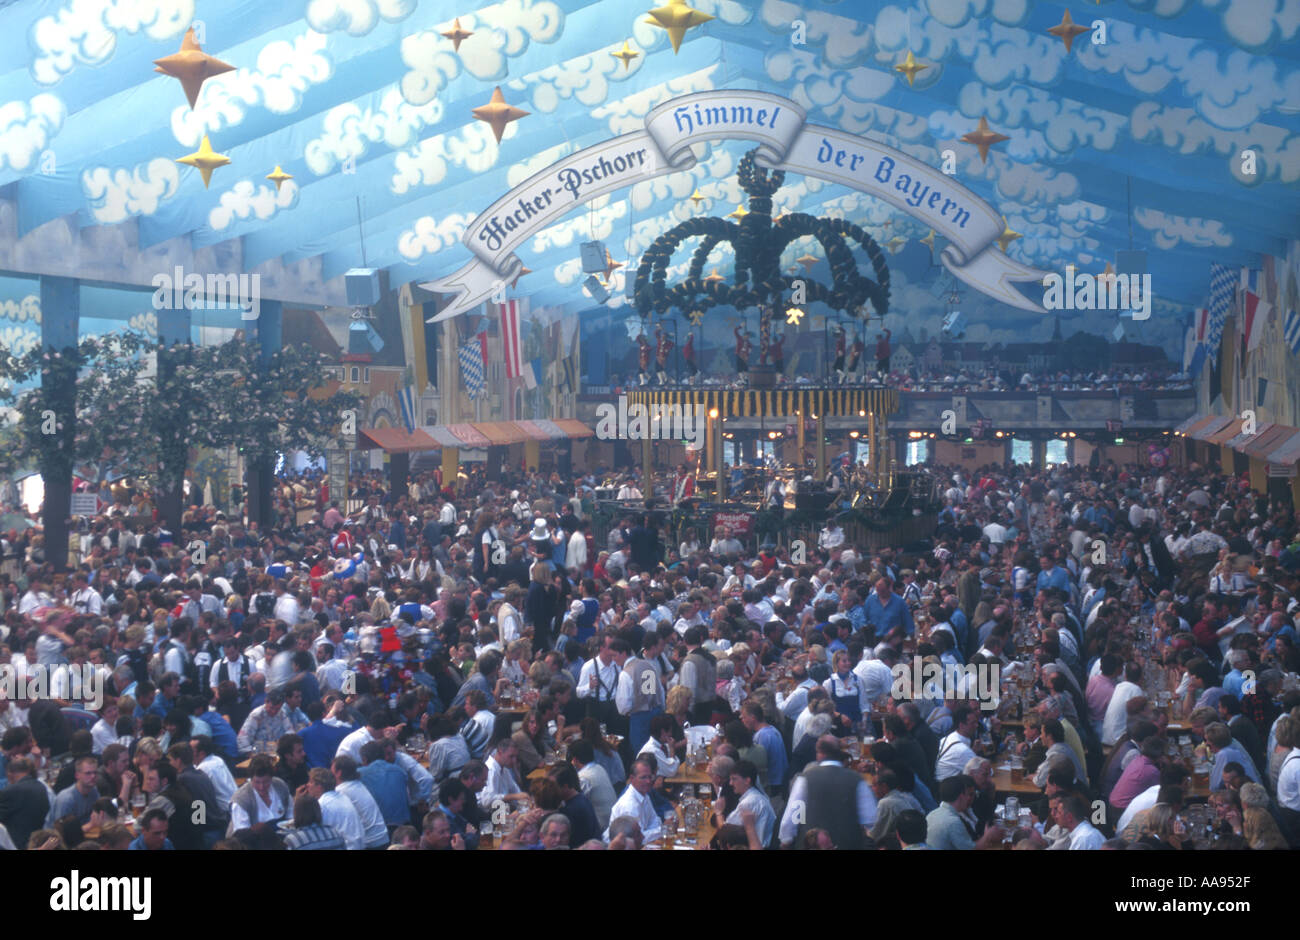 people in the huge beer tent of the Hacker Pschorr brewery on the Oktoberfest Munich Bavaria Germany Europe & people in the huge beer tent of the Hacker Pschorr brewery on the ...